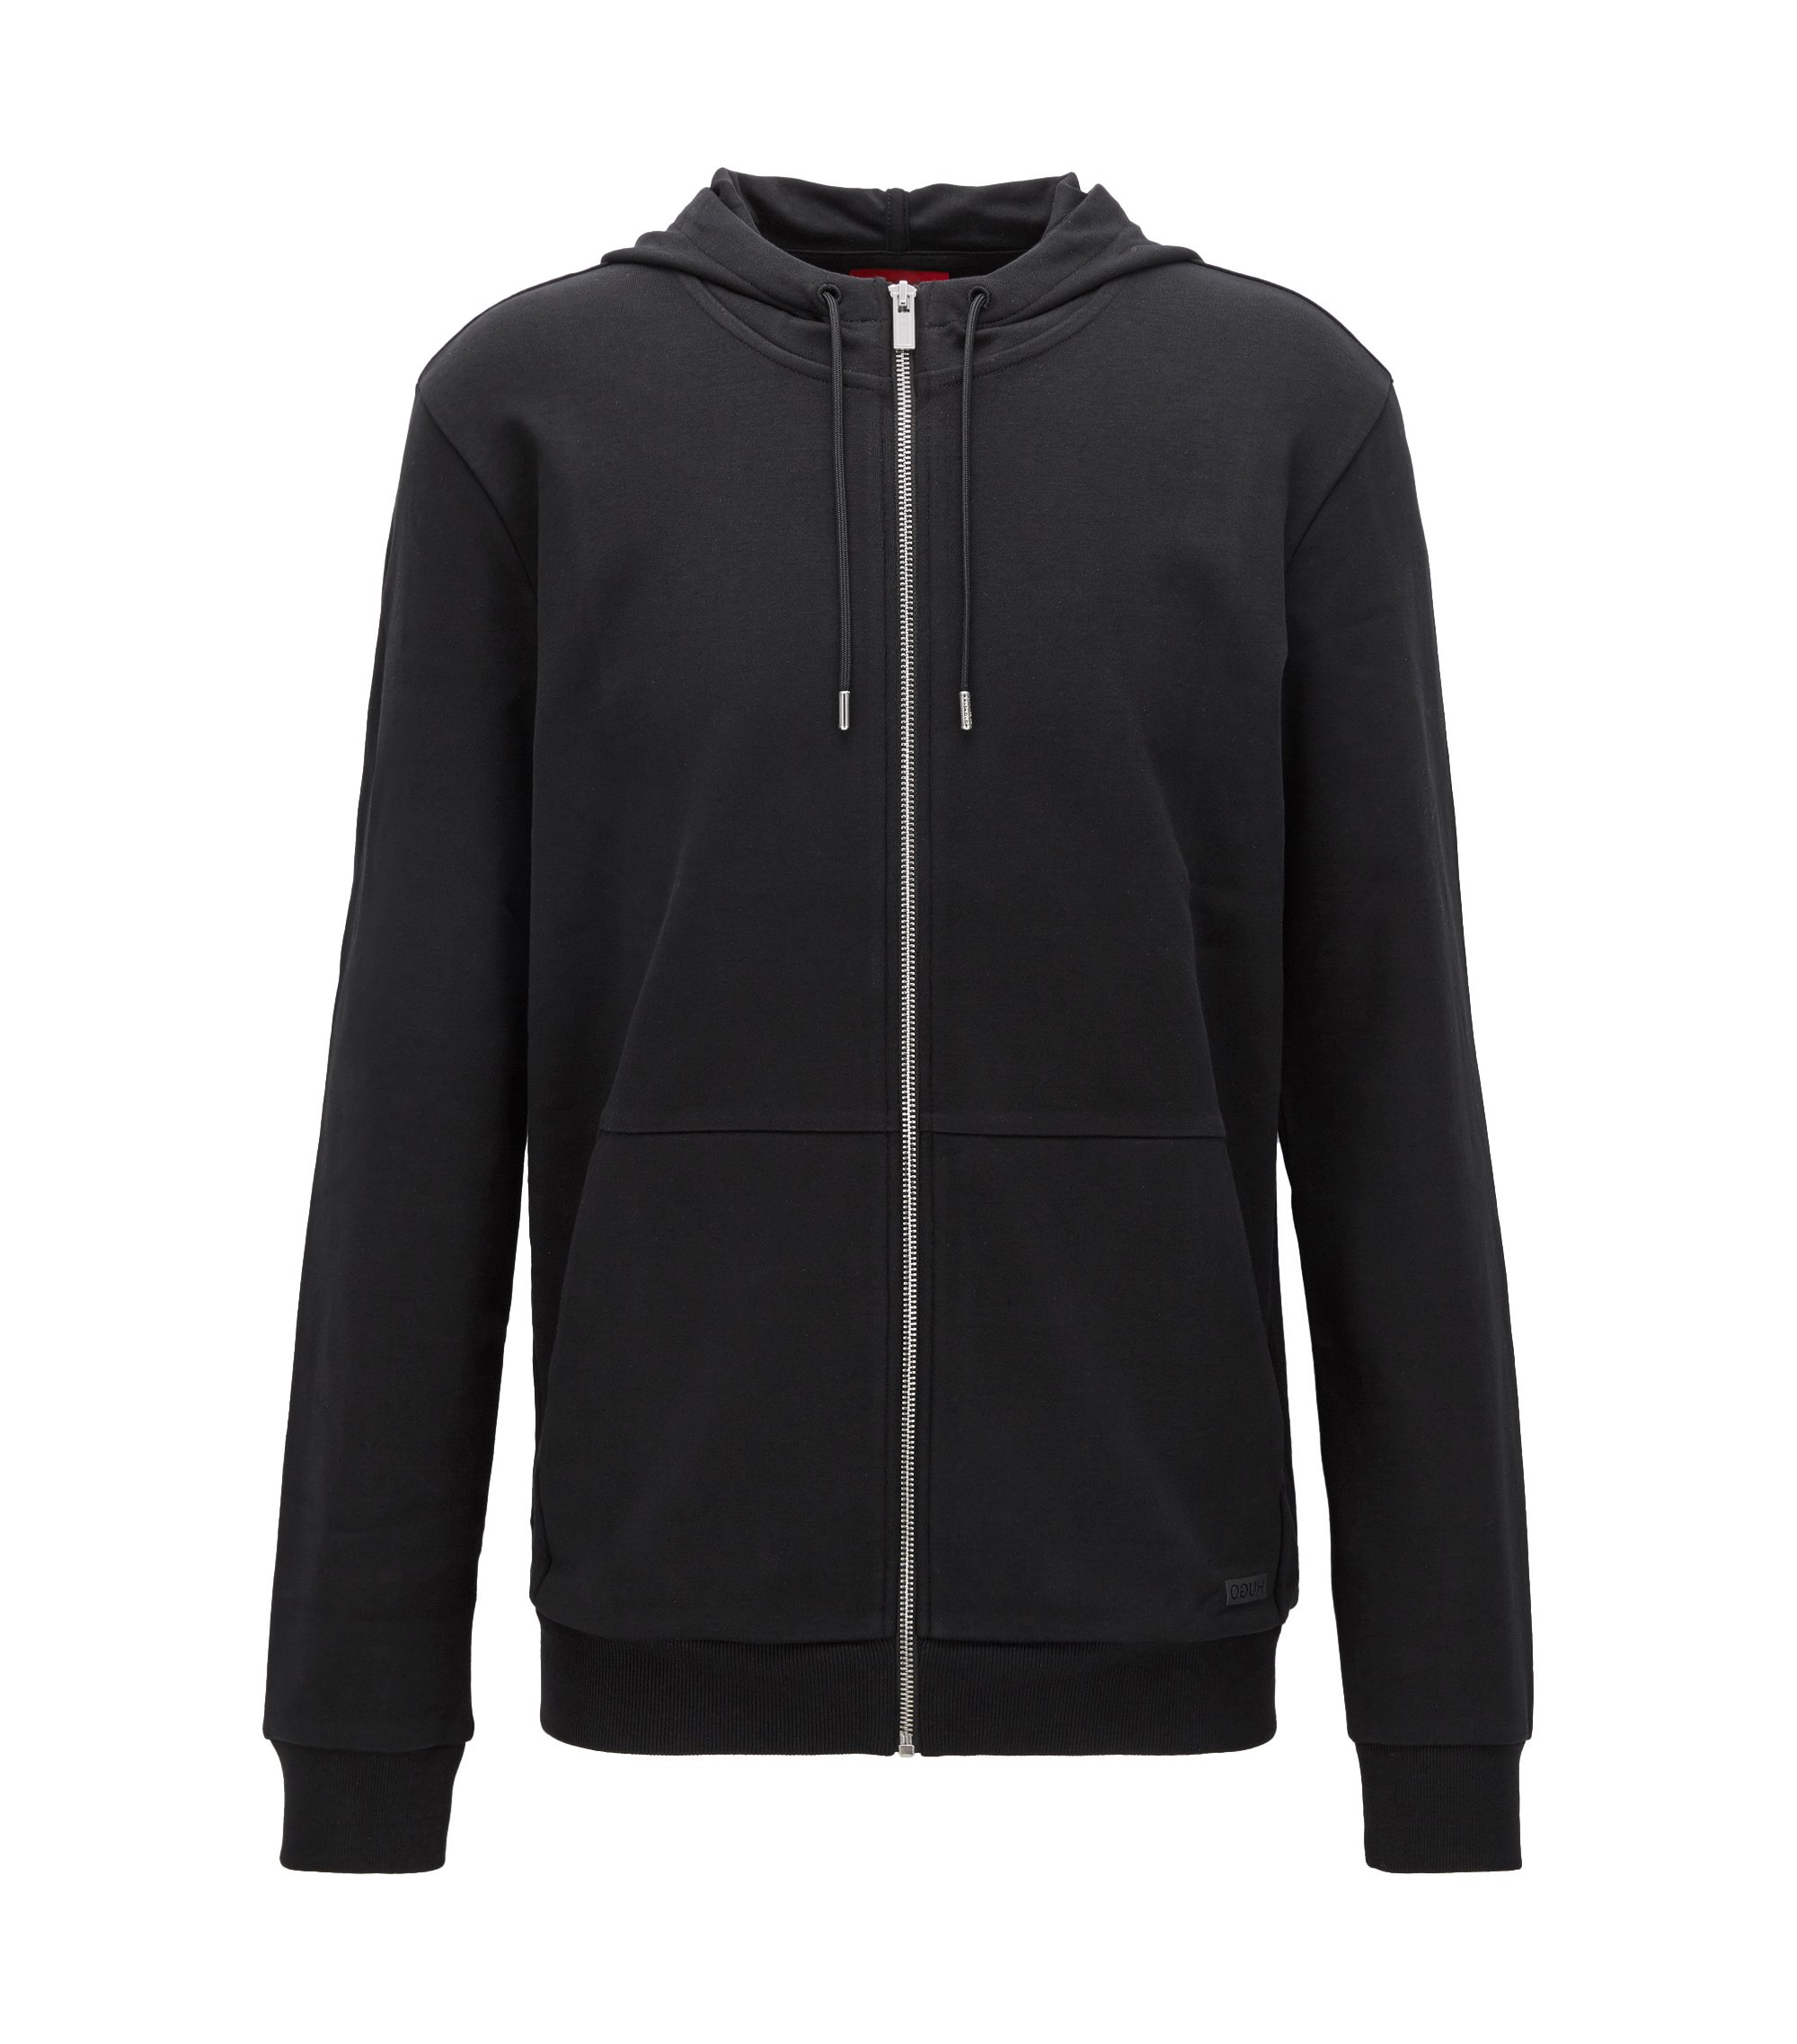 Cotton Full-Zip Hooded Sweater | Dattis, Black